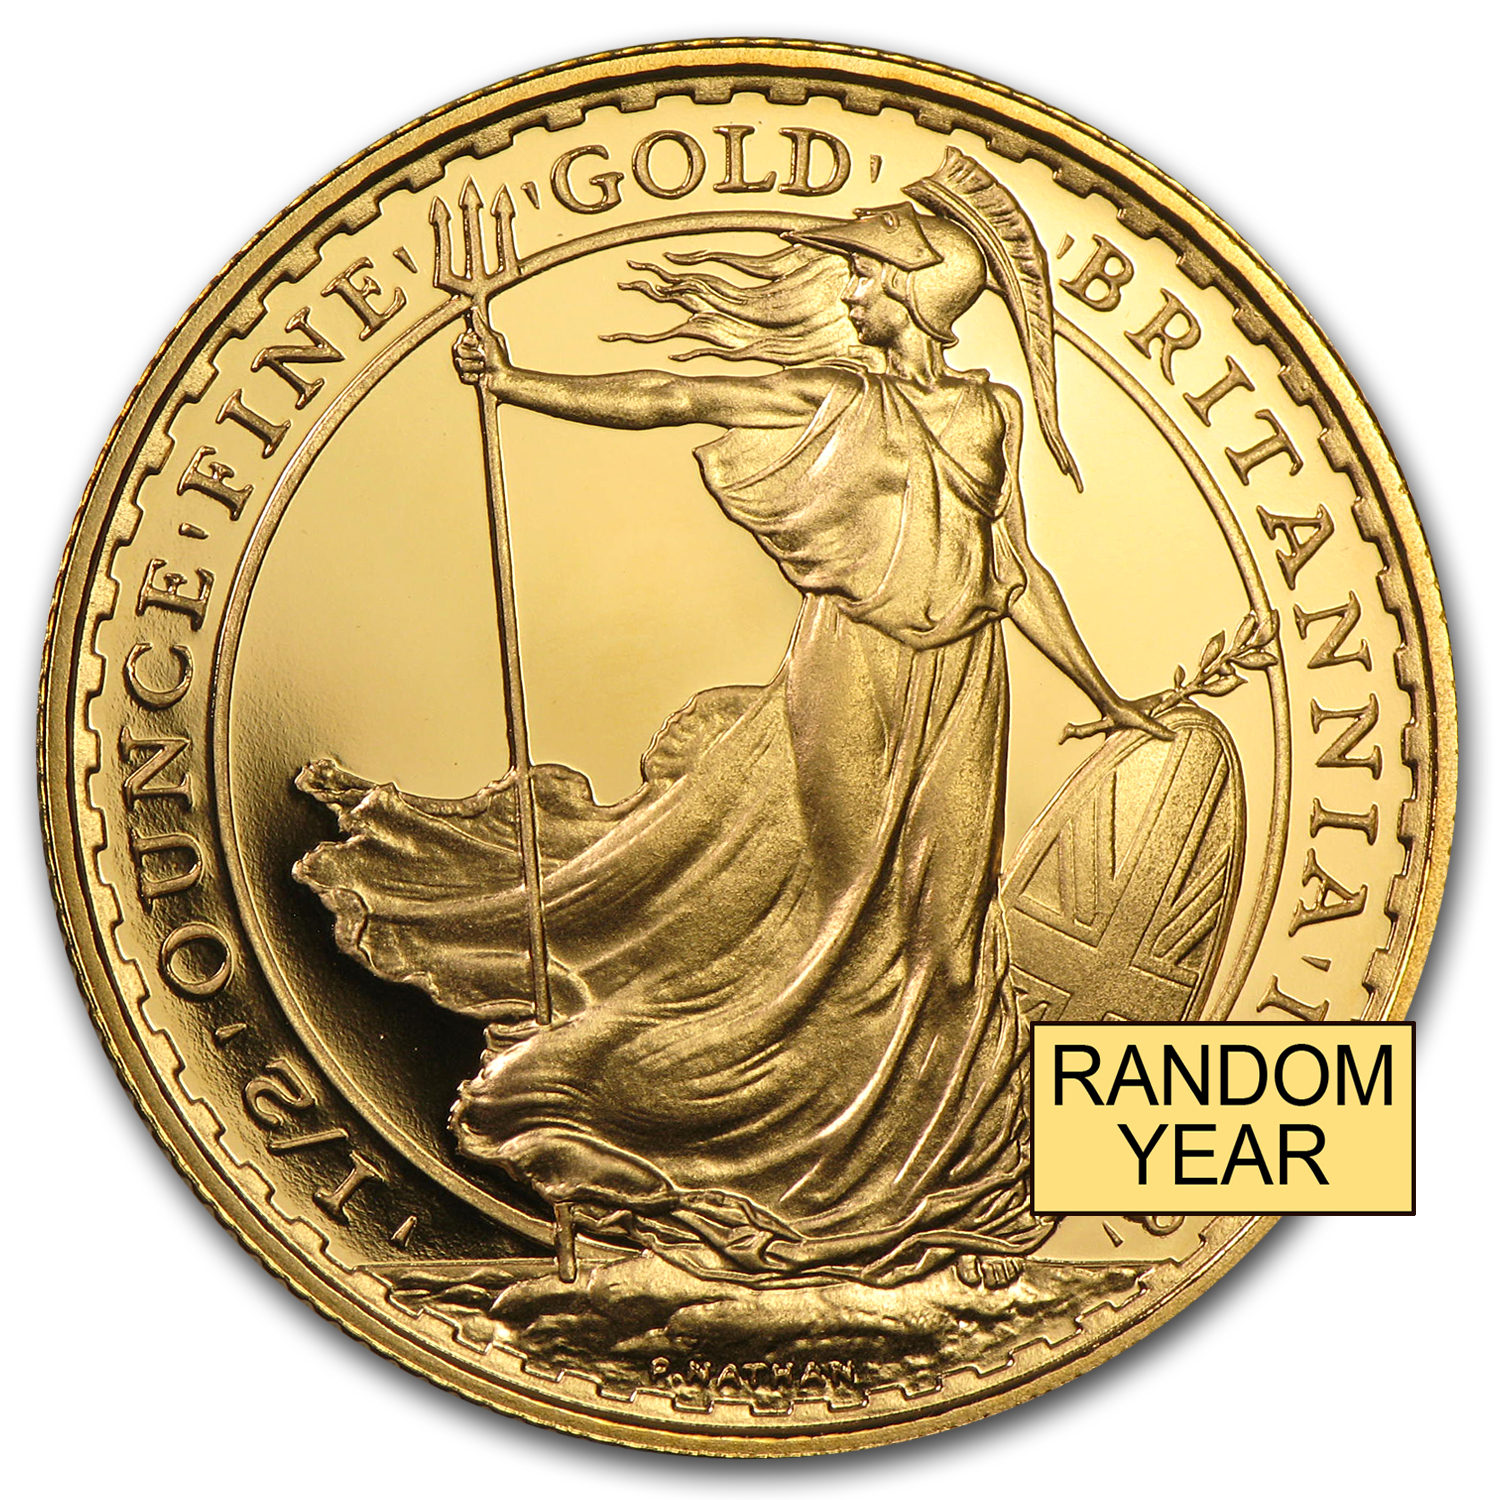 1/2 oz Gold Britannia BU/Proof - Random Year